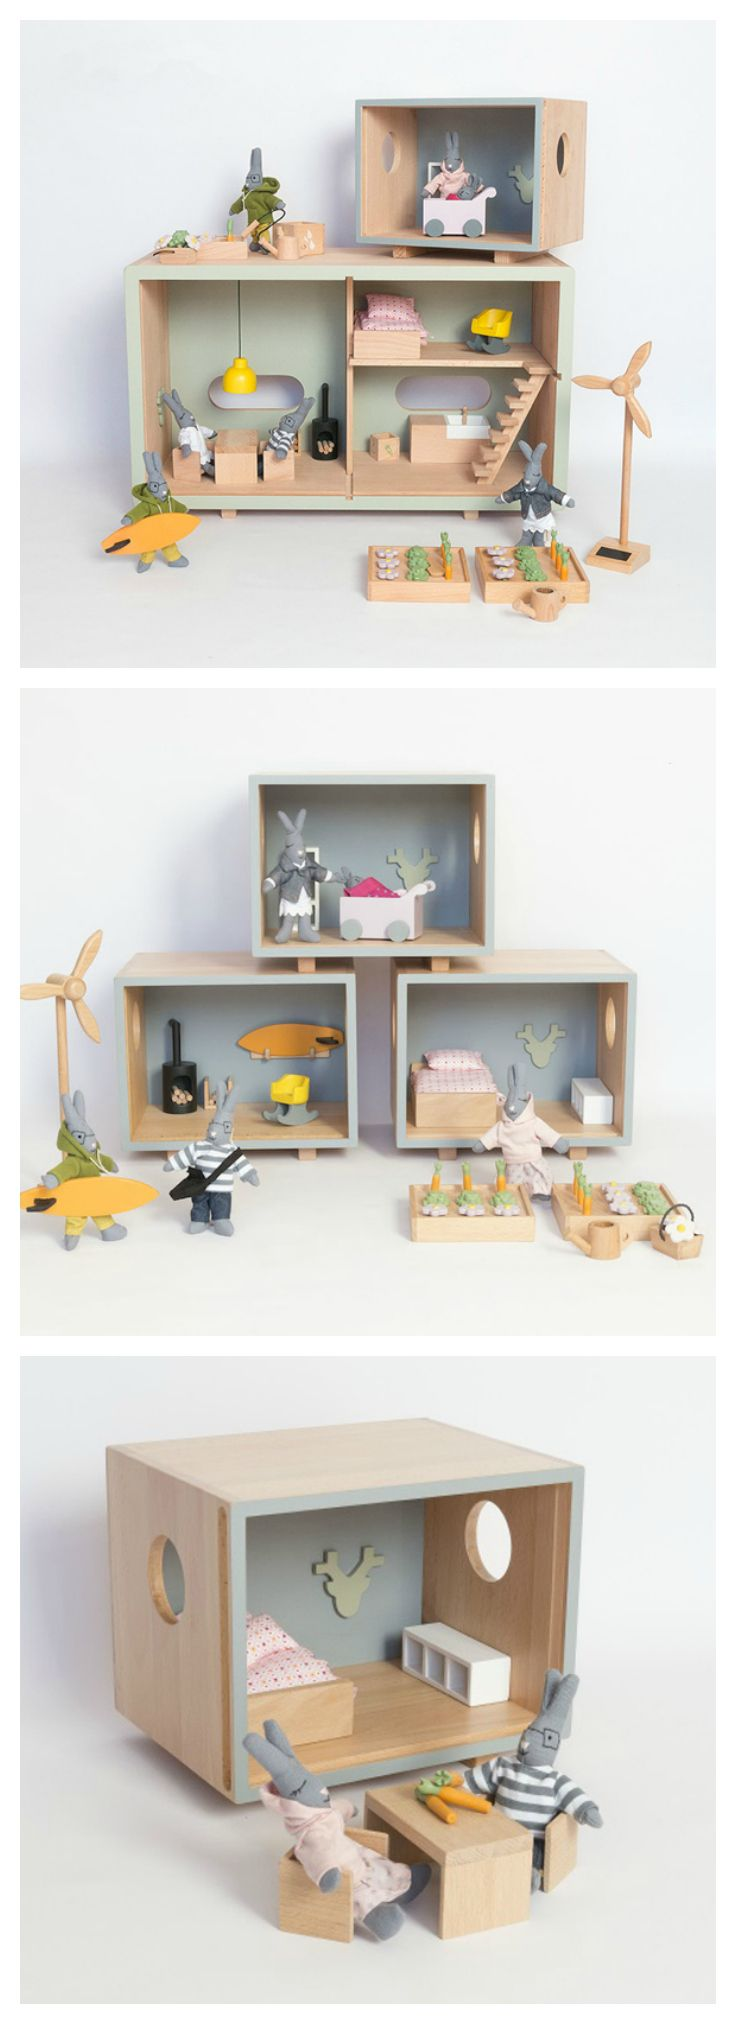 Ecological Wooden Toys We love this wooden eco-friendly doll house with all the fixtures and toys to go with it.